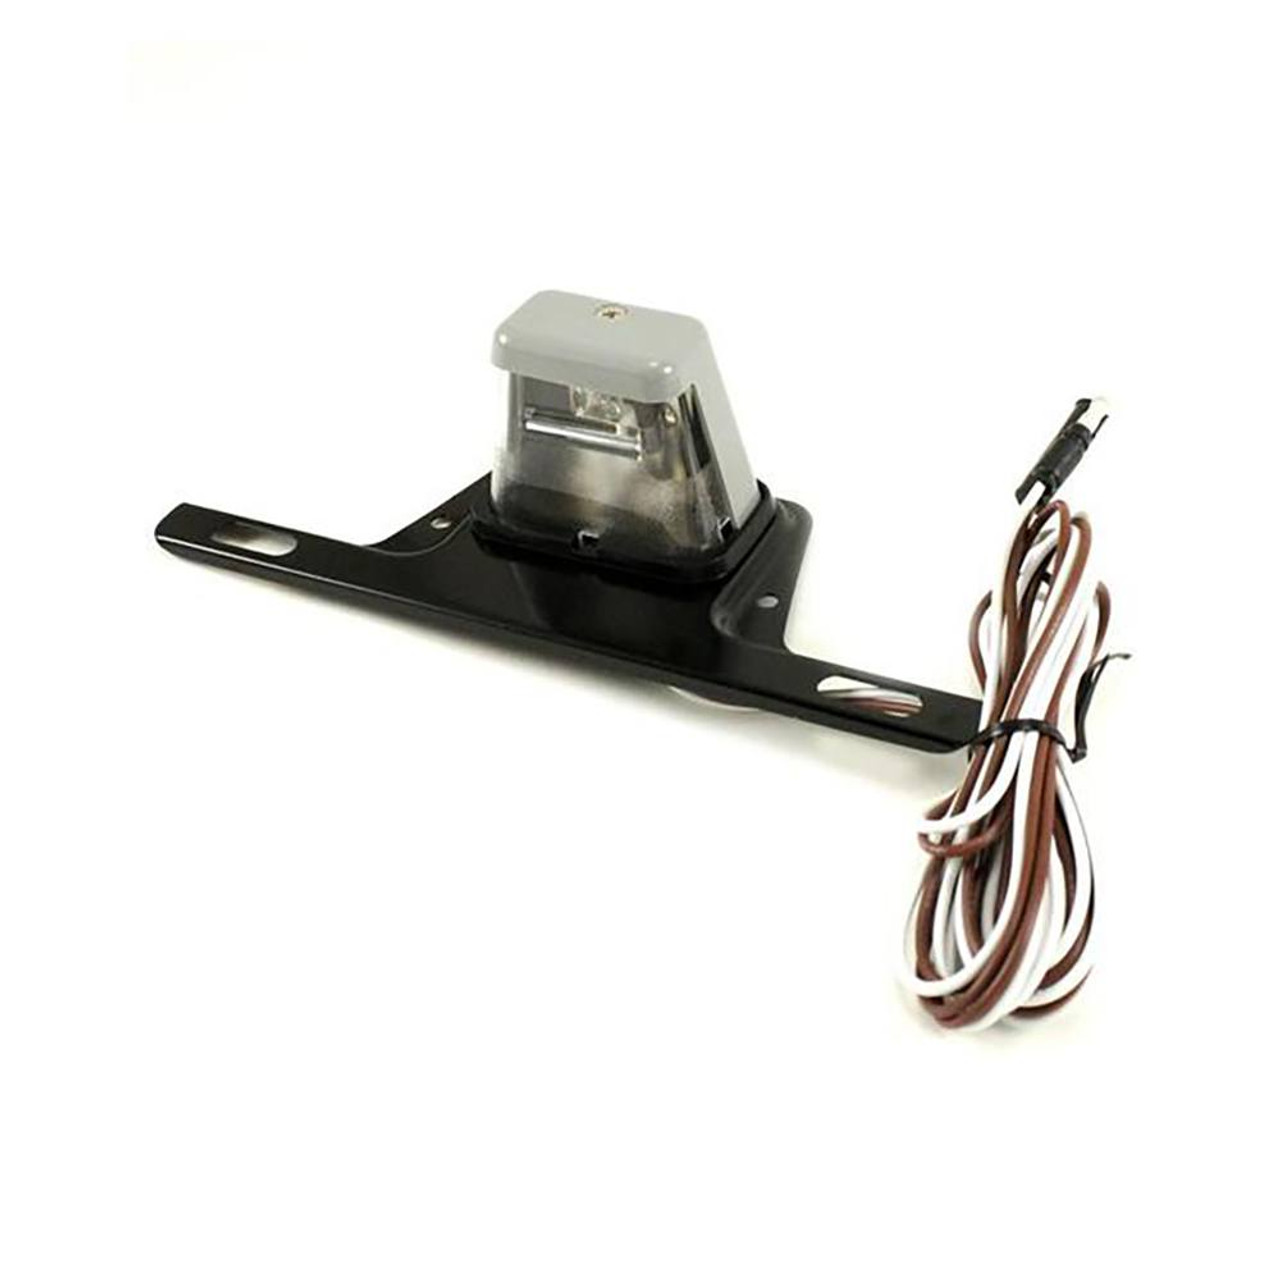 Trailer License Plate Bracket with Light and Plug